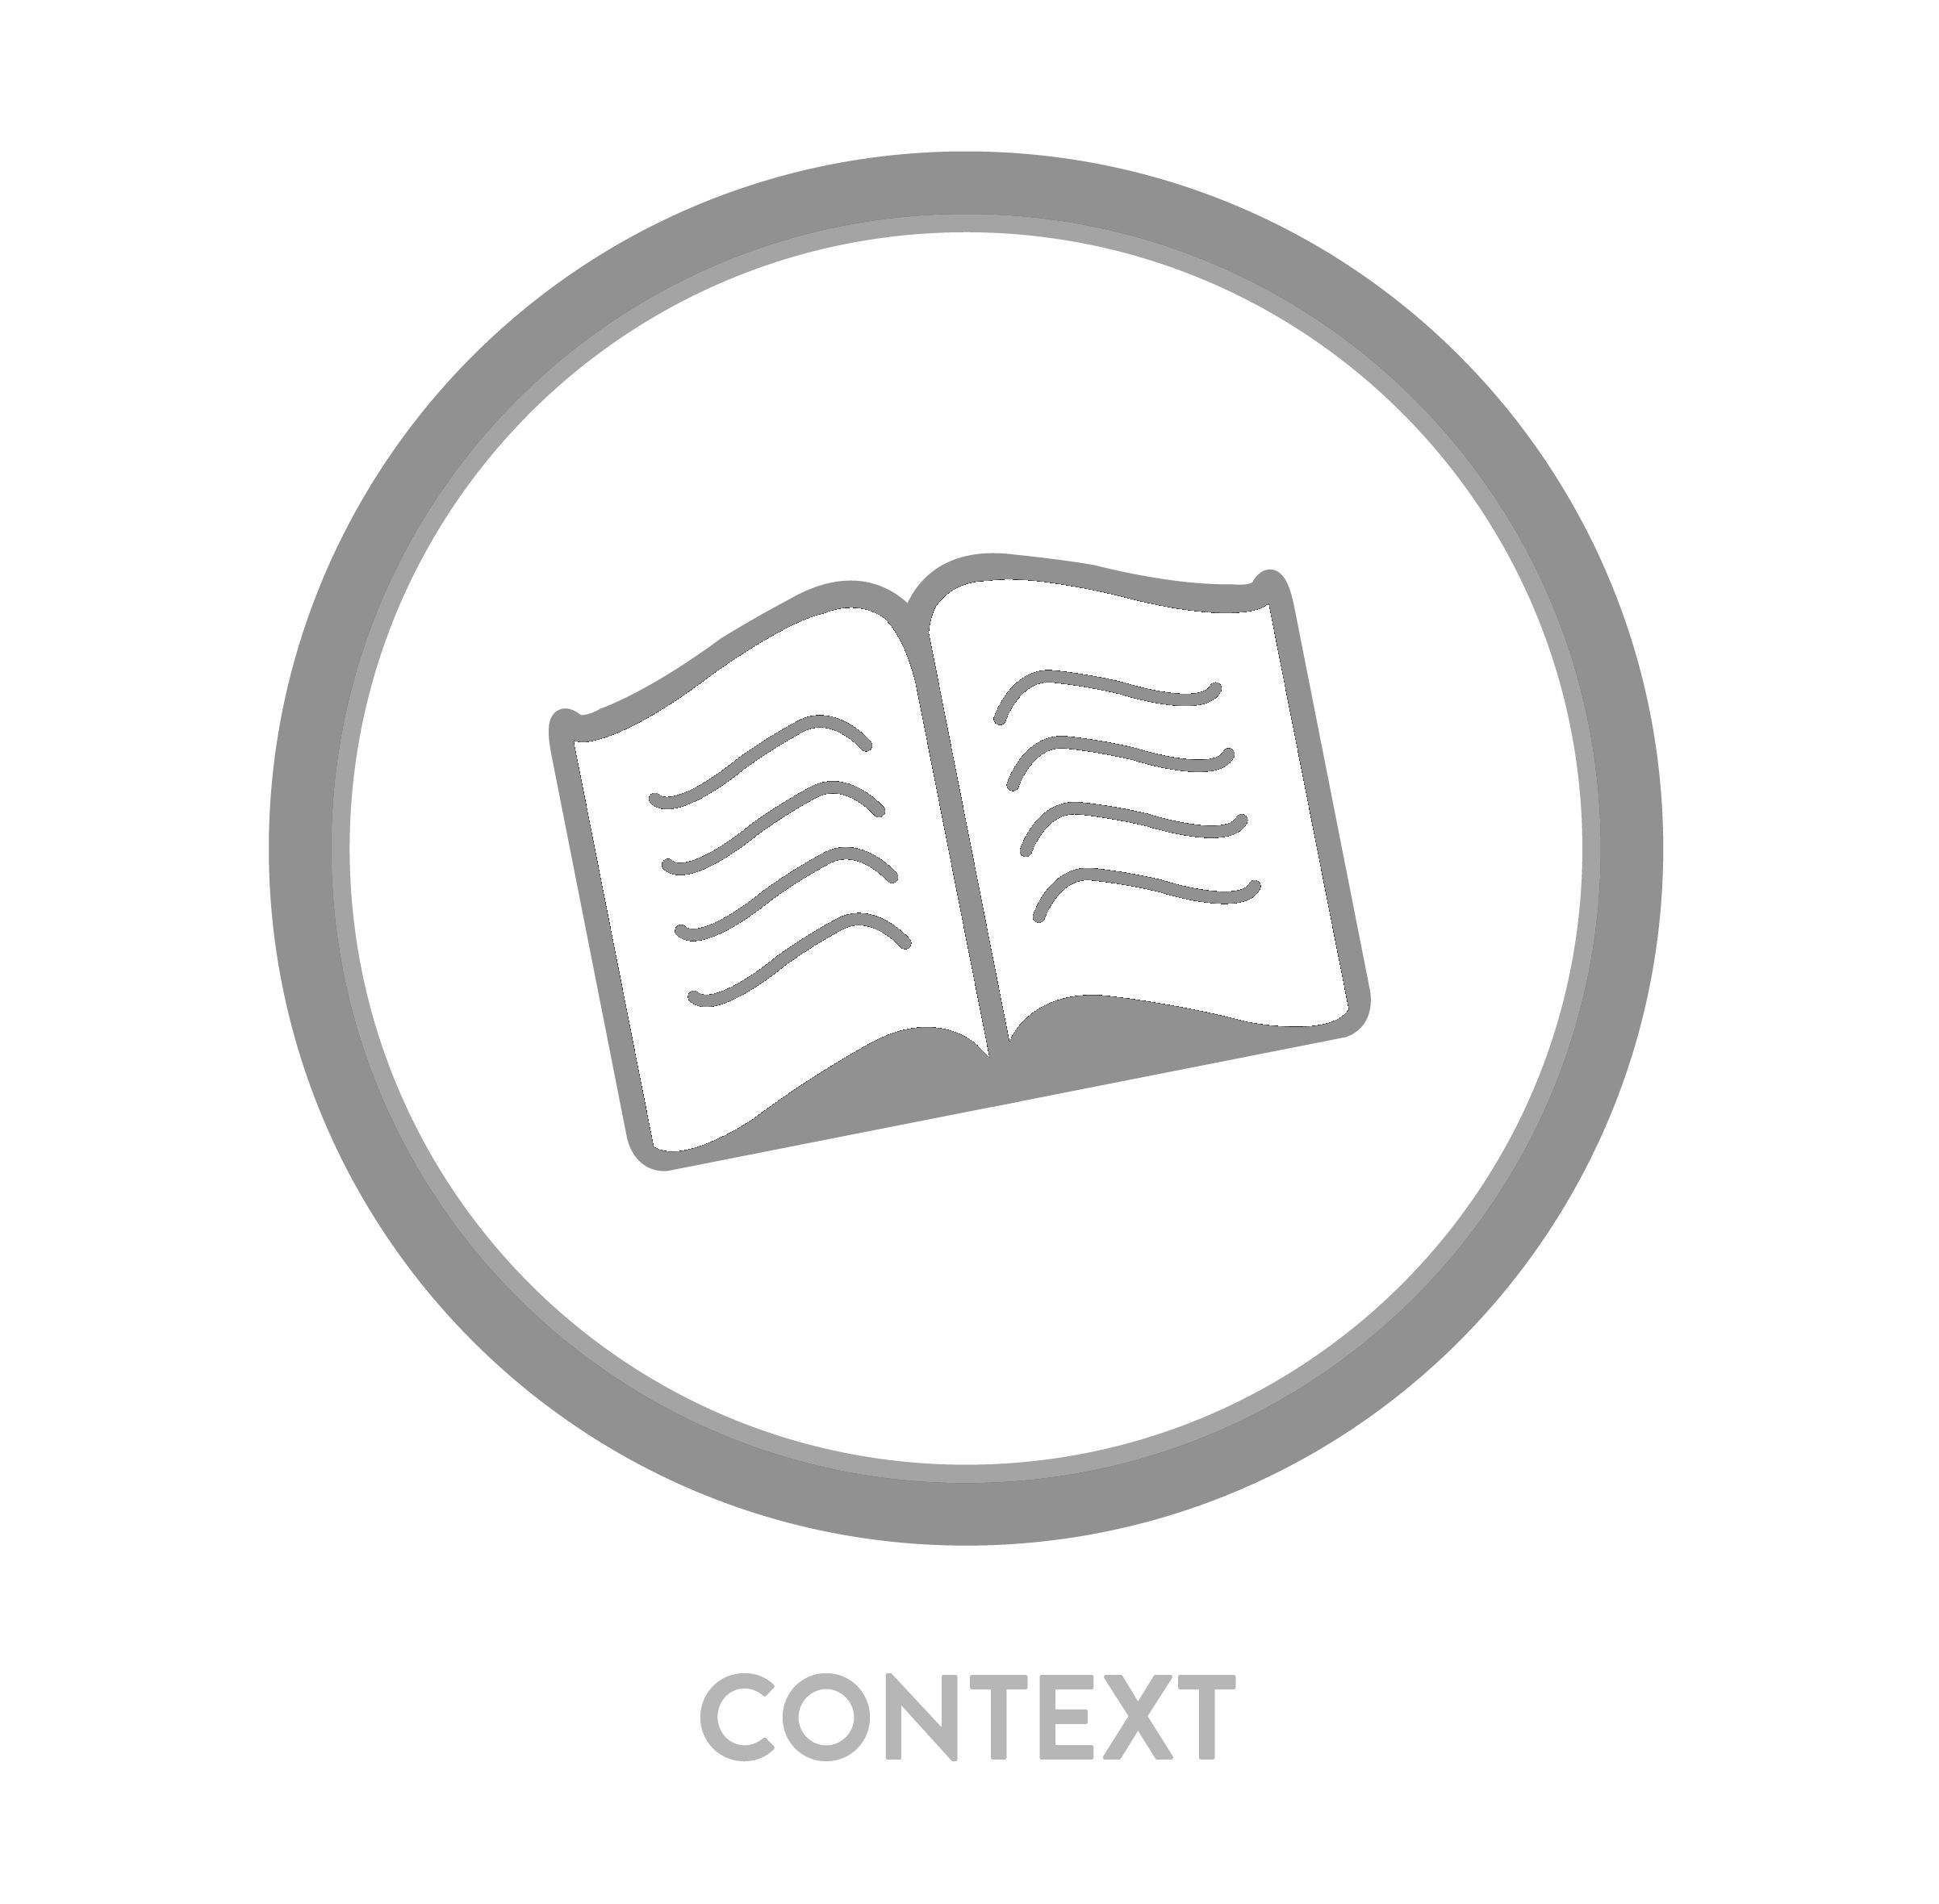 may 6-JUly 1 - ◊ Reading Scripture Well◊ Vineyard History, Values and Leadership◊ Vocation and Calling◊ Preaching Practicum**Each student will prepare and present a Sermon